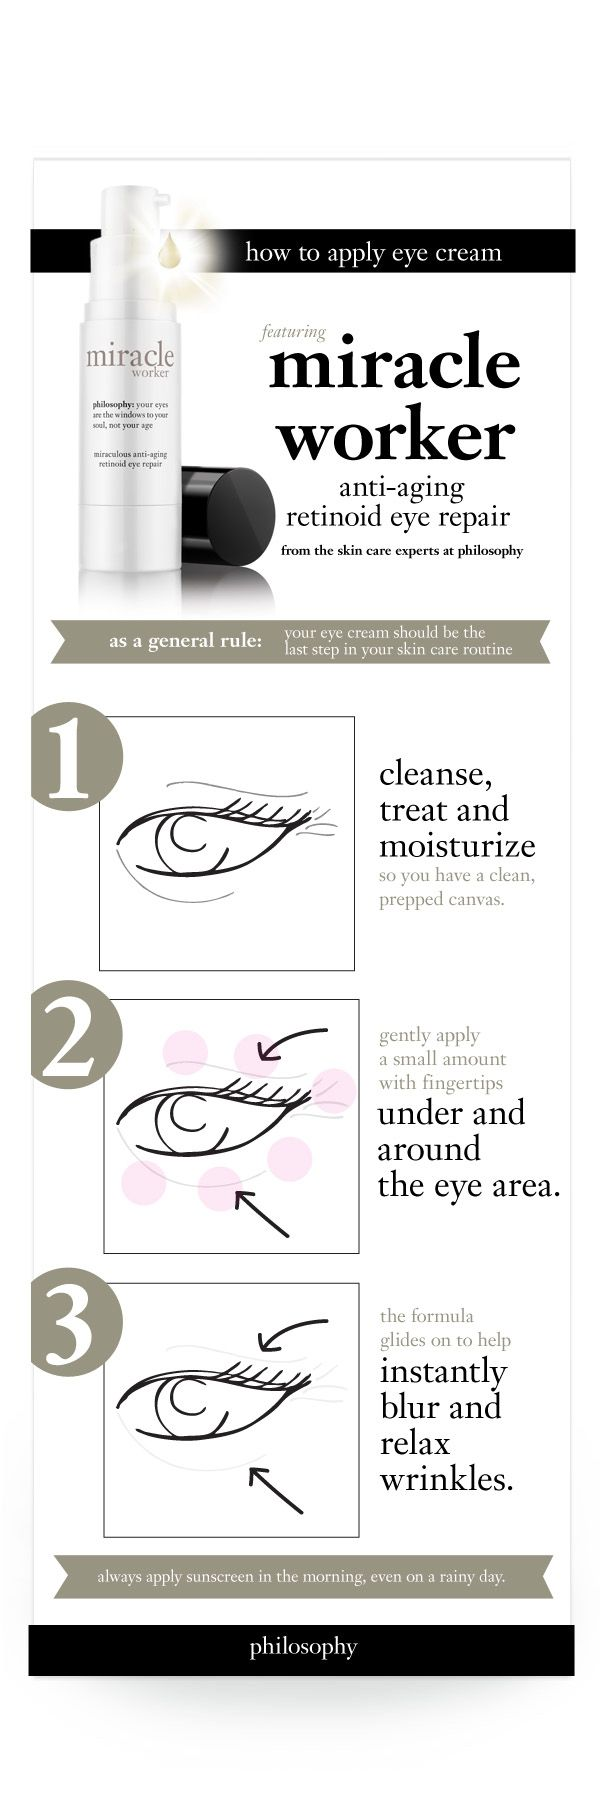 8 best ulta images on pinterest beauty products beauty tips and